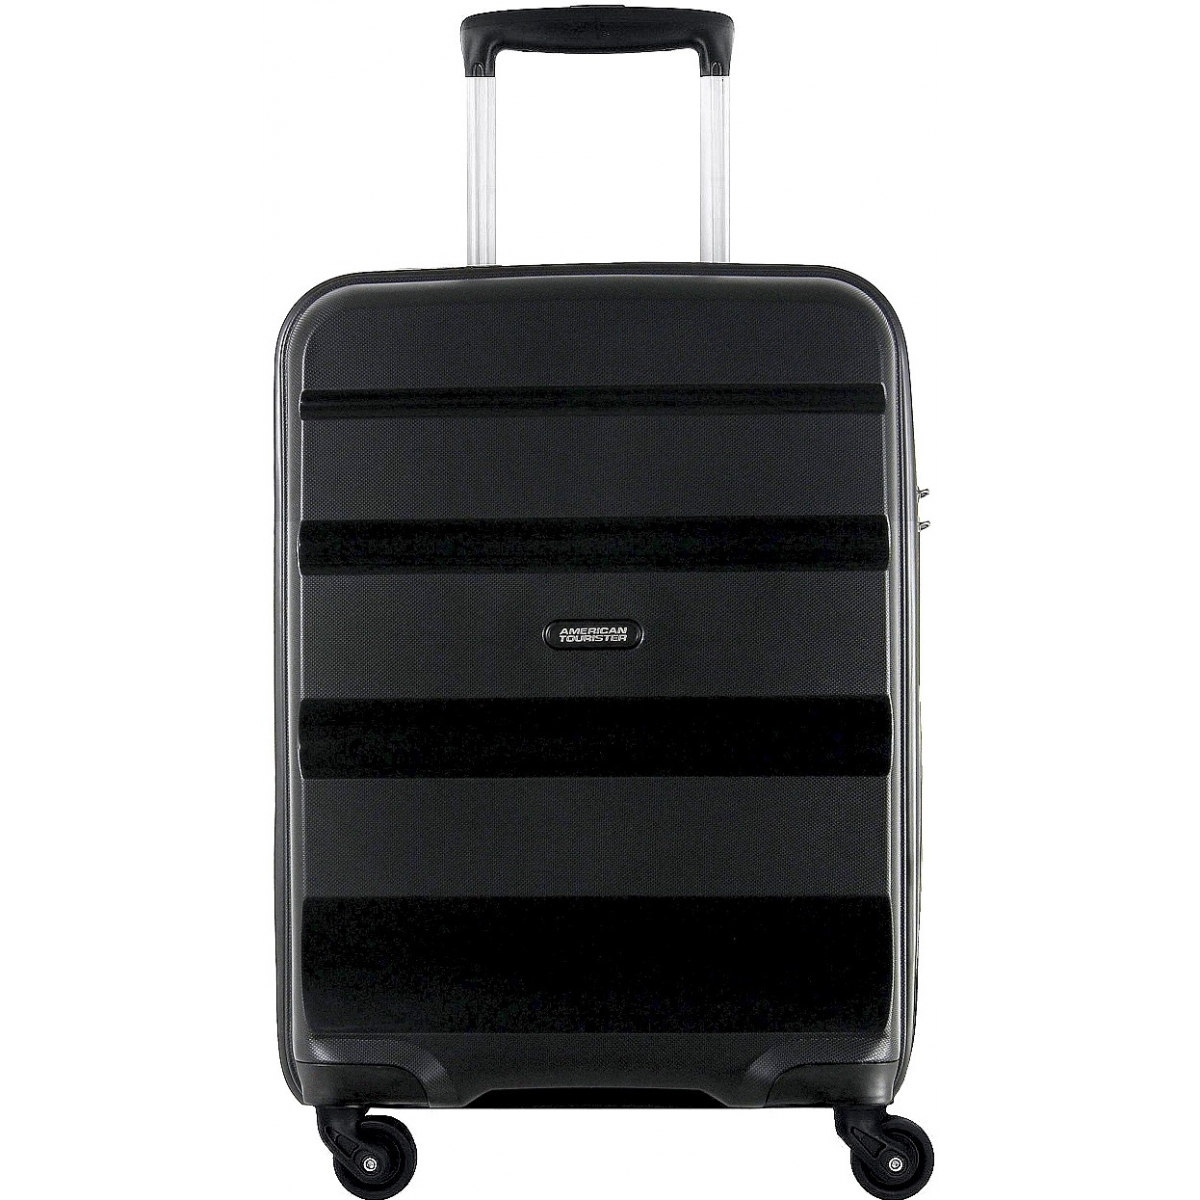 valise cabine bon air american tourister 55cm bonair22 couleur principale noir valise. Black Bedroom Furniture Sets. Home Design Ideas